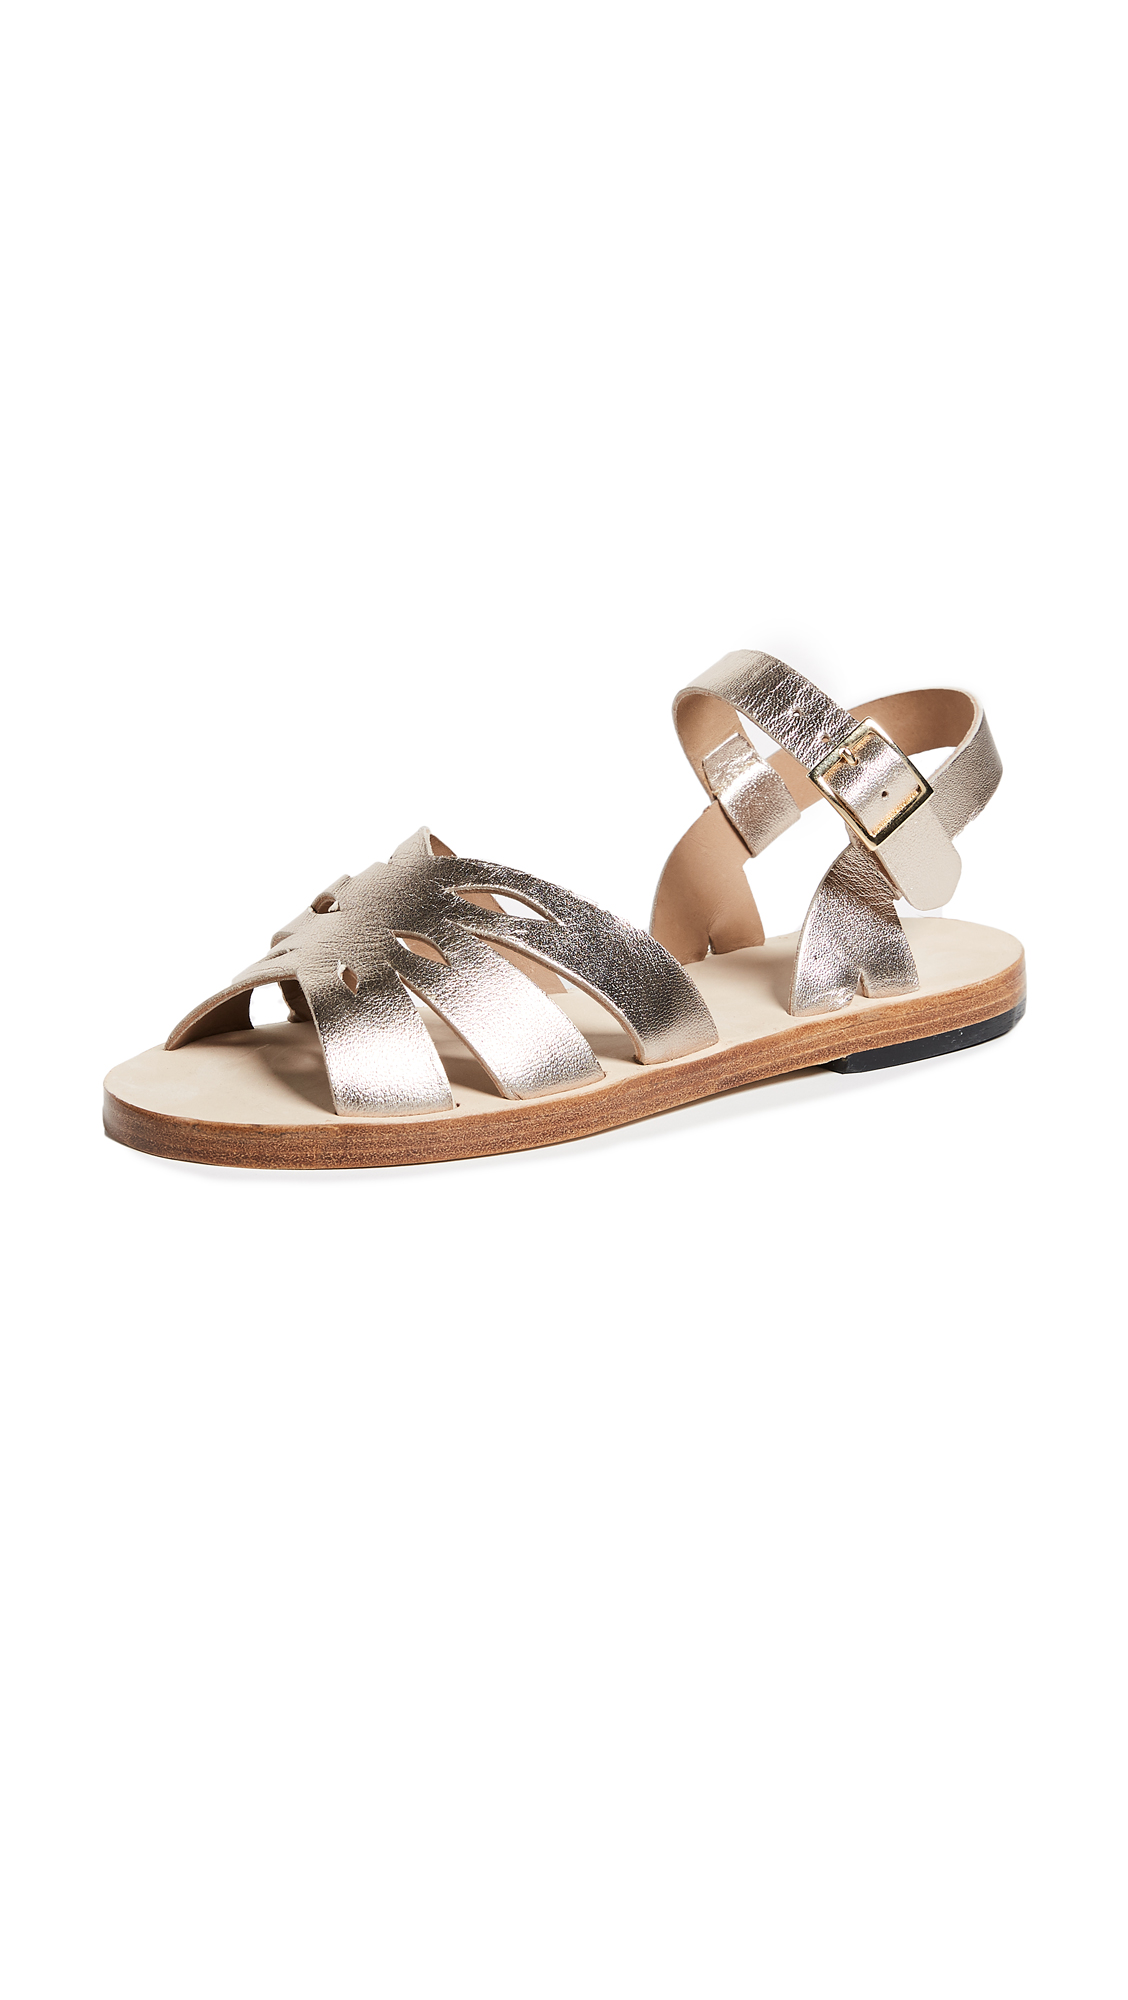 A.P.C. Lilia Sandals - Or Pale